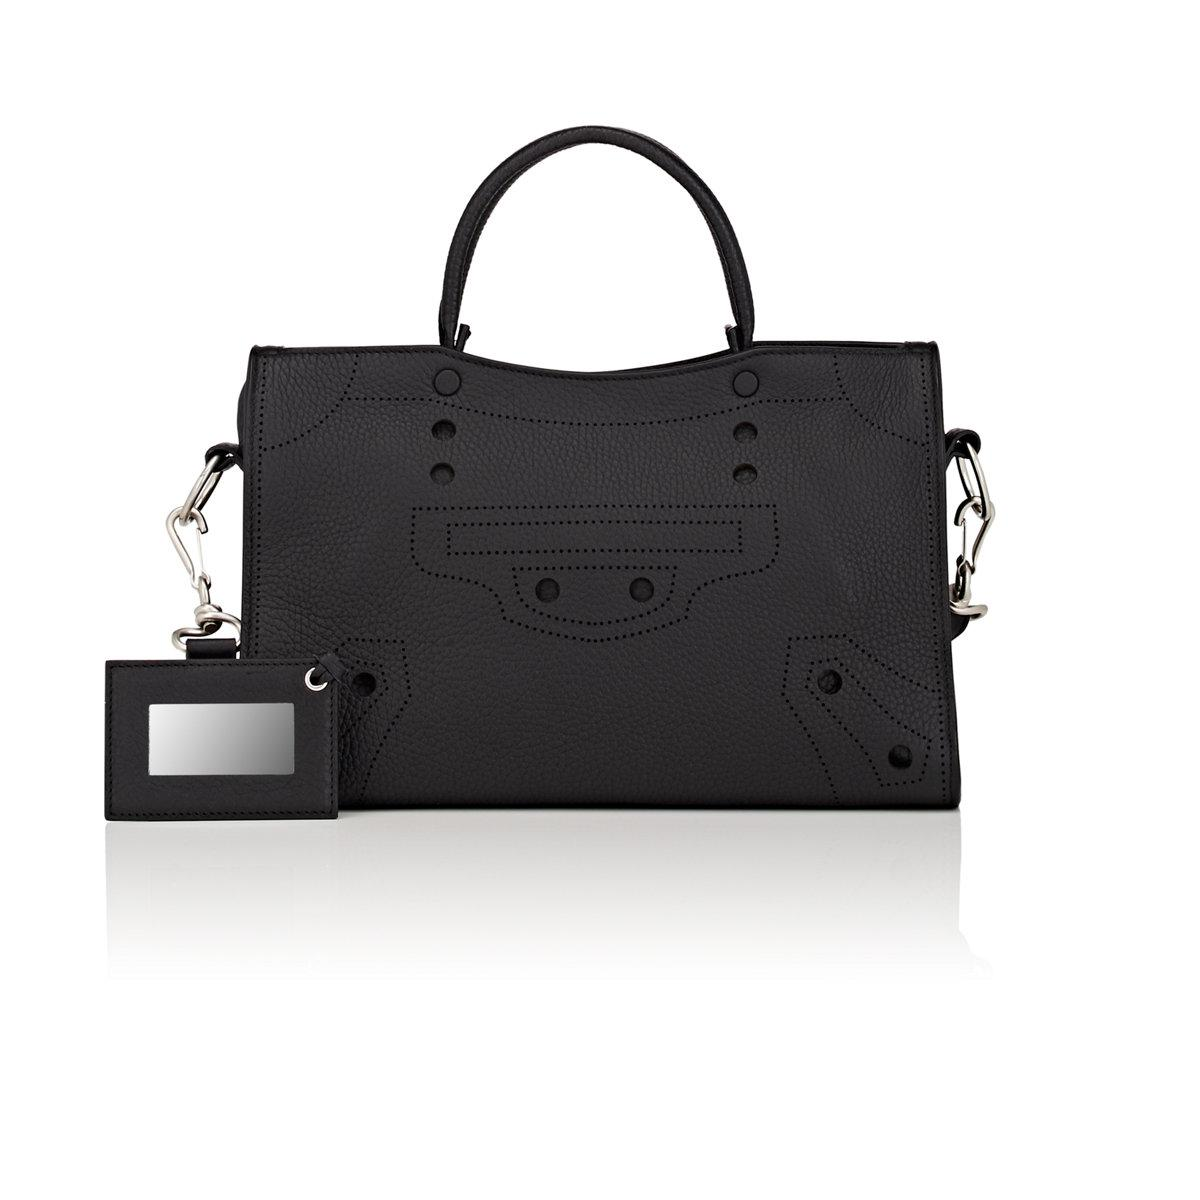 Find Great Cheap Online Outlet Factory Outlet Balenciaga Leather Small Bag Discount Best Prices Cheap High Quality Best Place To Buy d9LY8l3qq